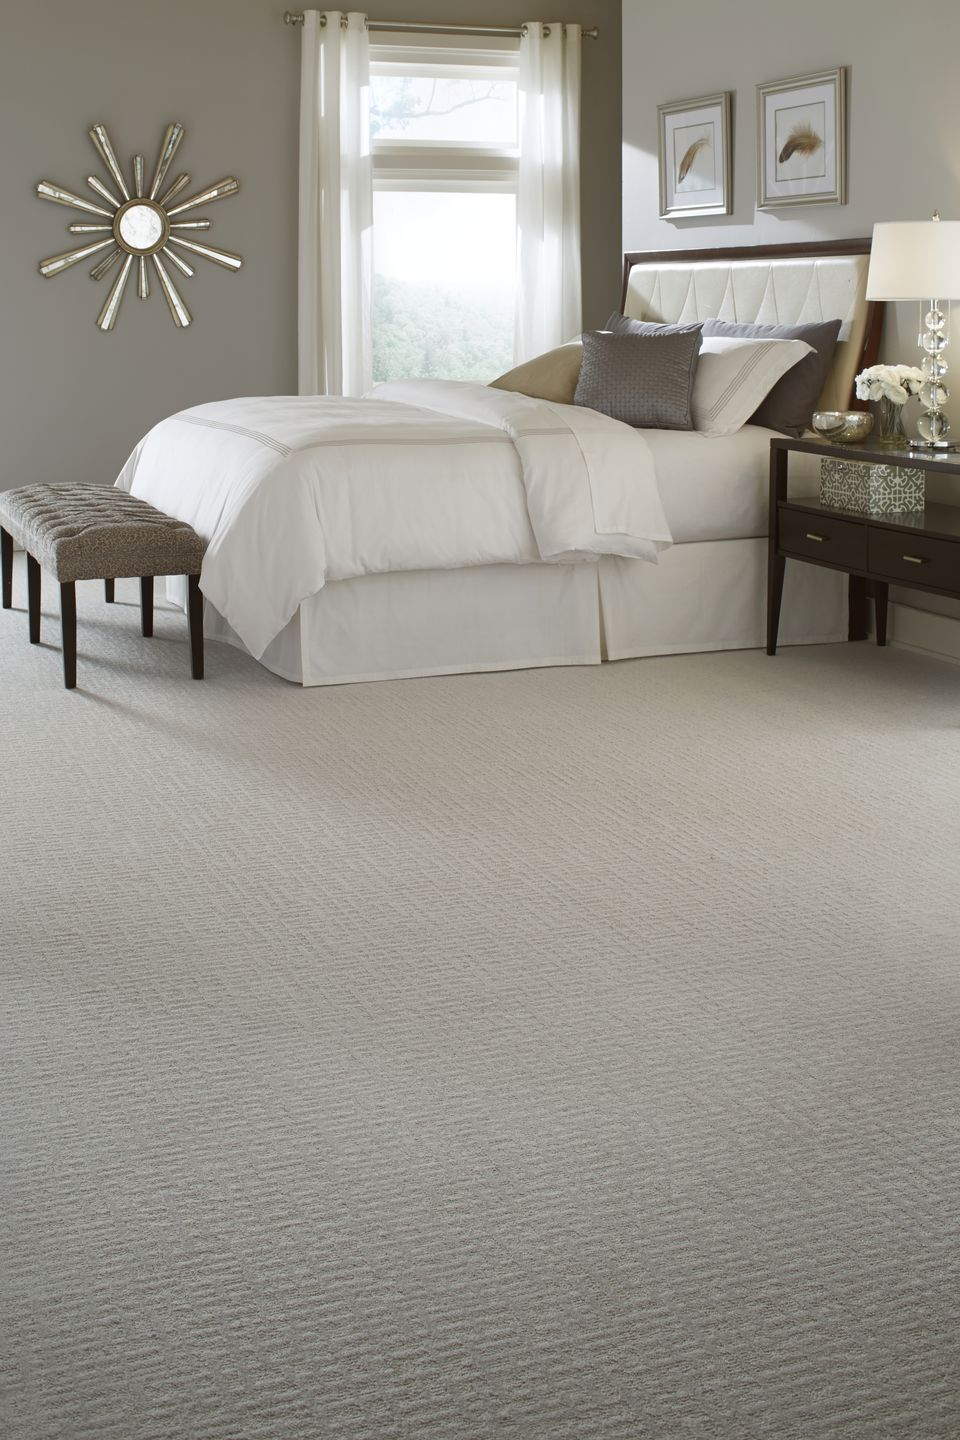 Trendy Bedrooms 2016 Of Carpet Color Trends For 2016 Carpet Vidalondon